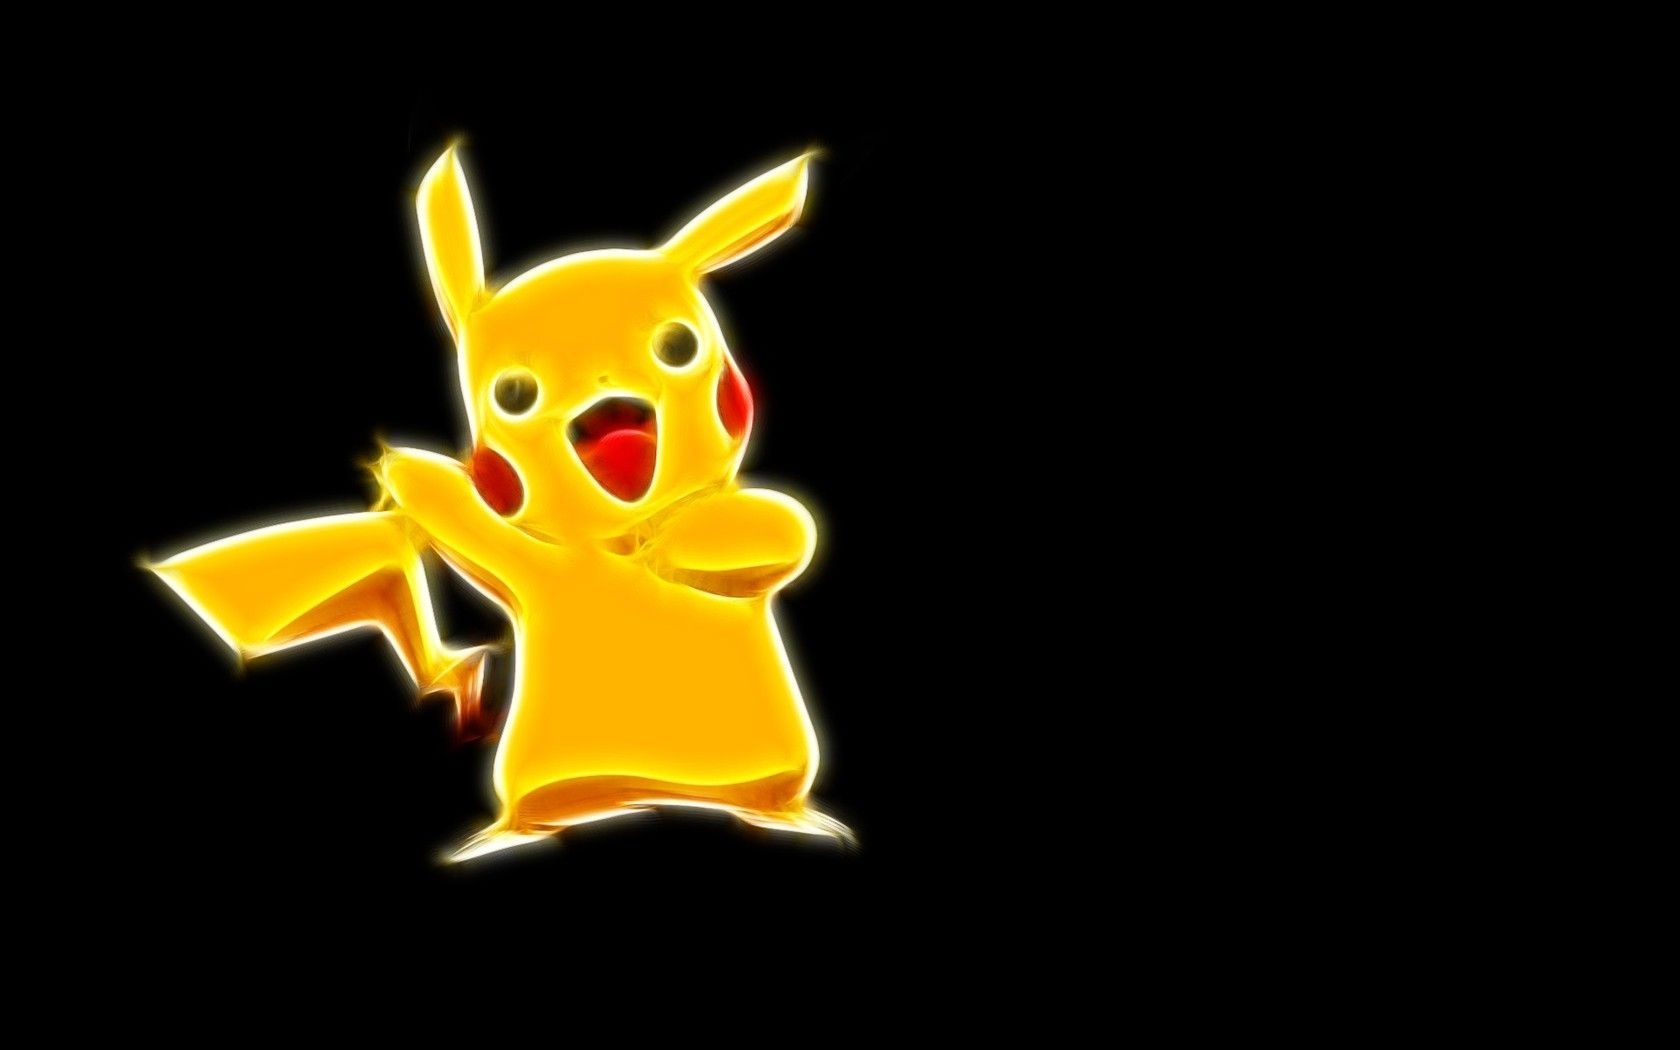 Moving Pokemon Wallpapers - Top Free